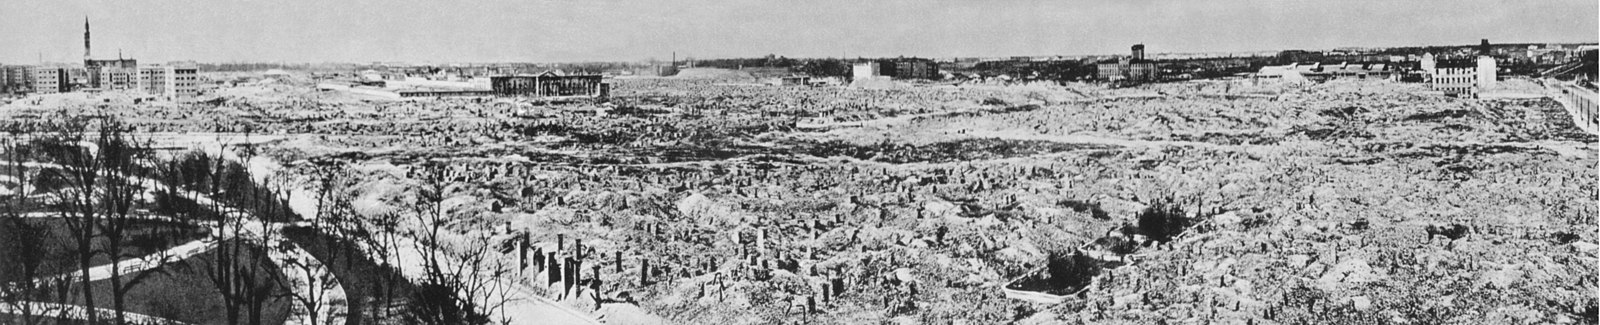 Warsaw c. 1950, still witness to the massive World War II destruction of the city. Northwest view of the Krasinski Gardens and Swietojerska Street. Warsaw Ghetto destroyed by Germans, 1945.jpg